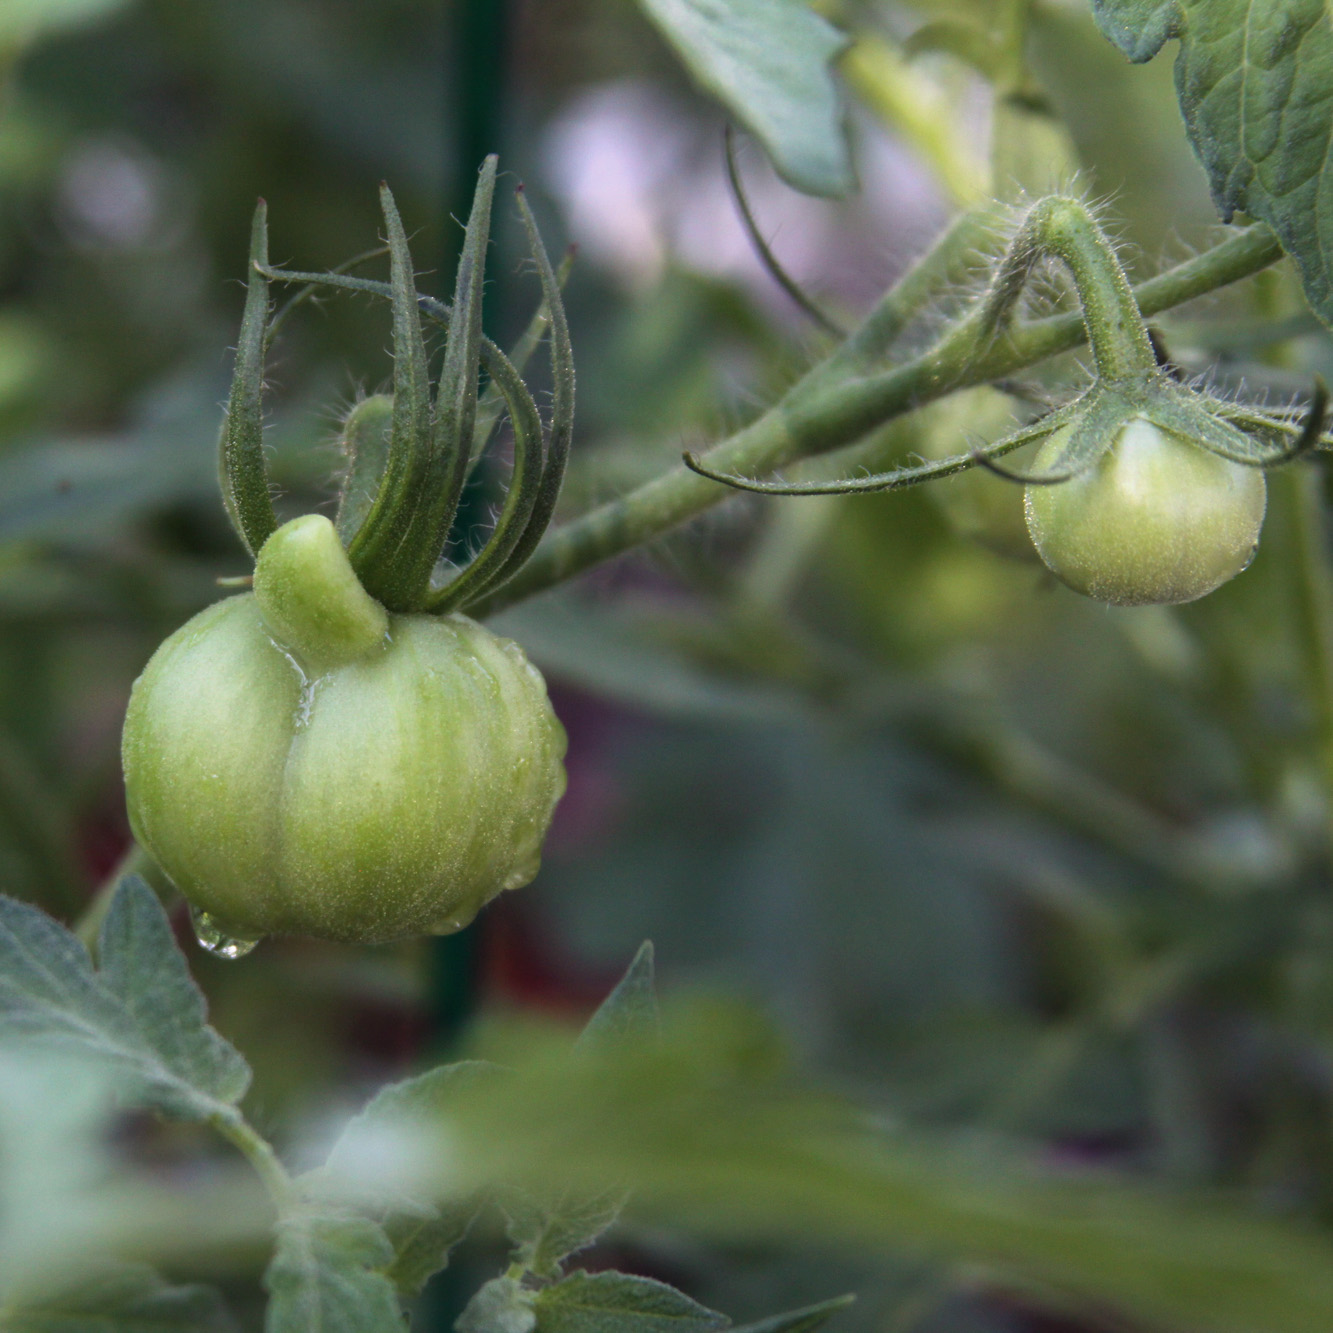 A funny tomato growing in my garden